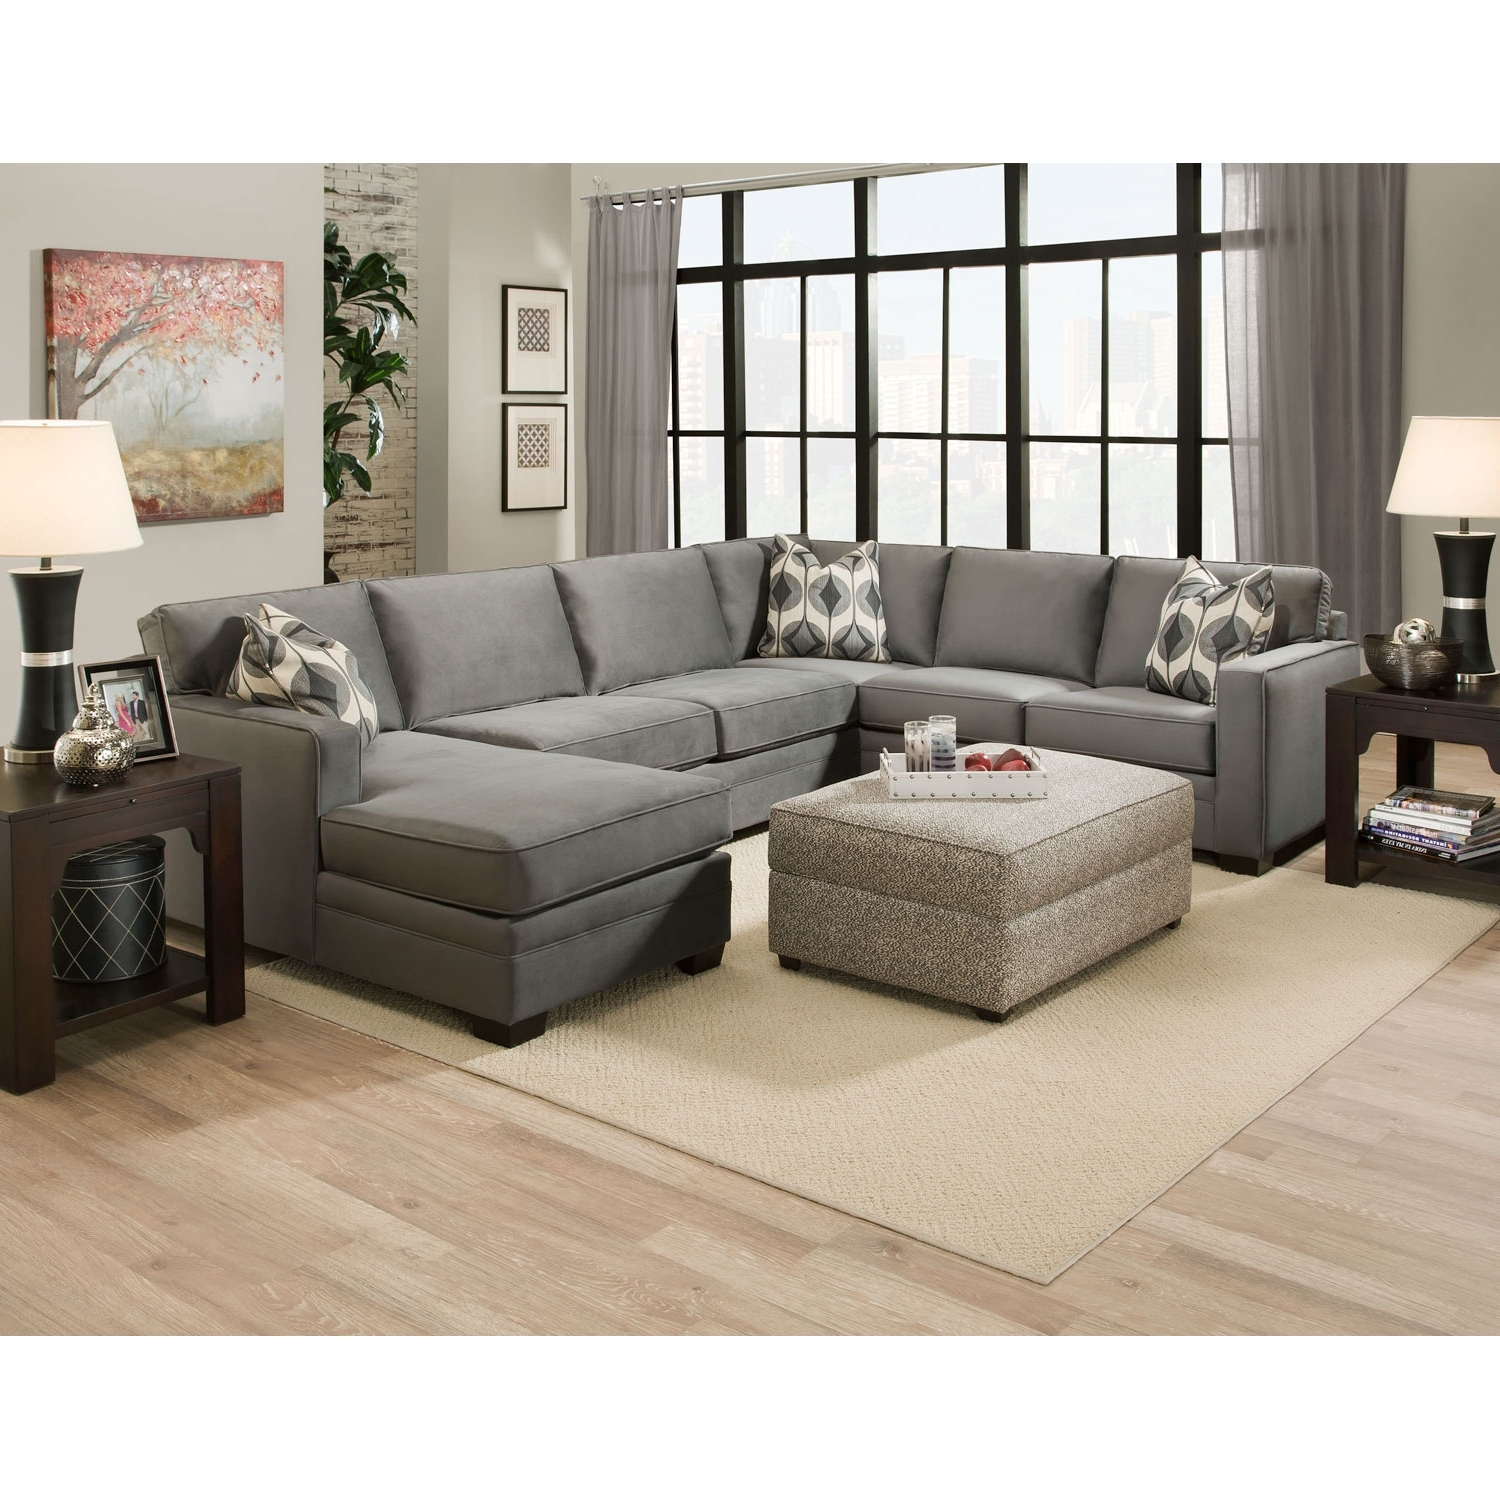 Gray Extra Large U Shaped Sectional Sofa With Chaise And Accent In Popular Memphis Tn Sectional Sofas (View 19 of 20)